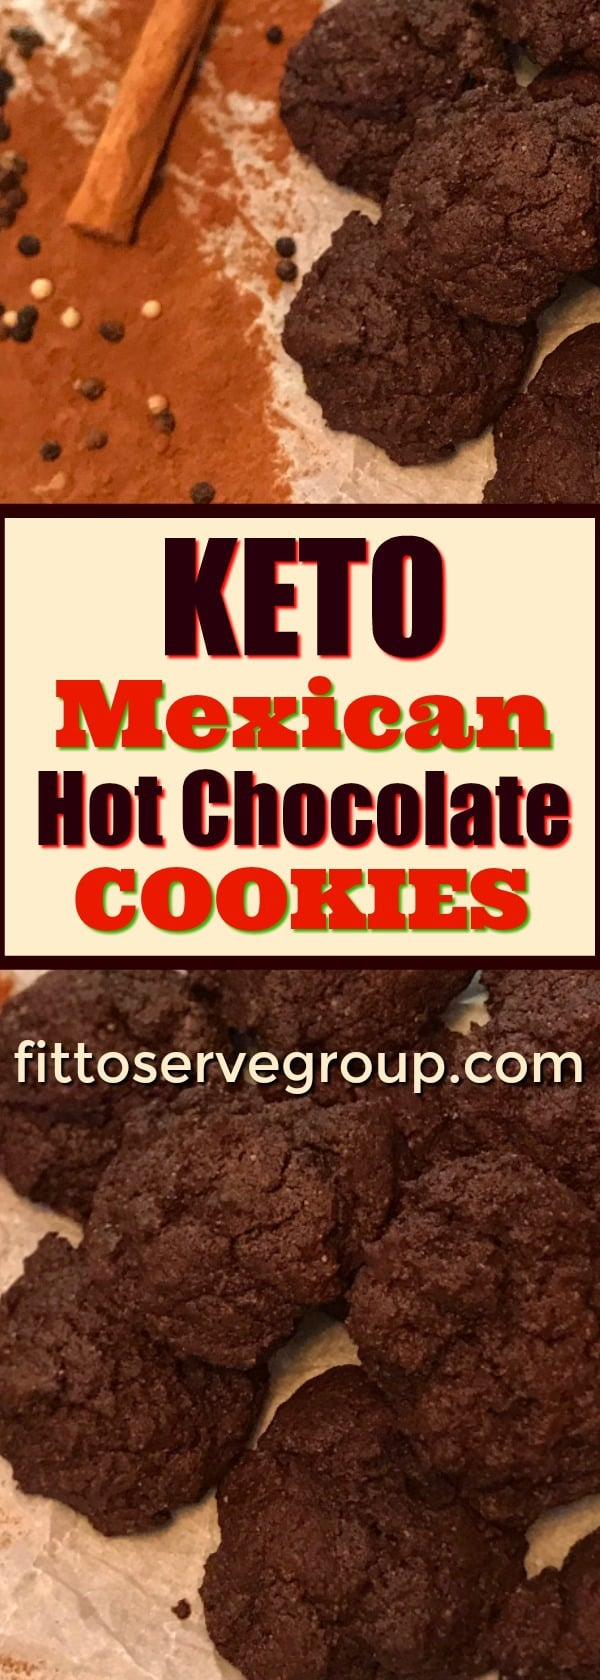 Keto Mexican Hot Chocolate Cookies